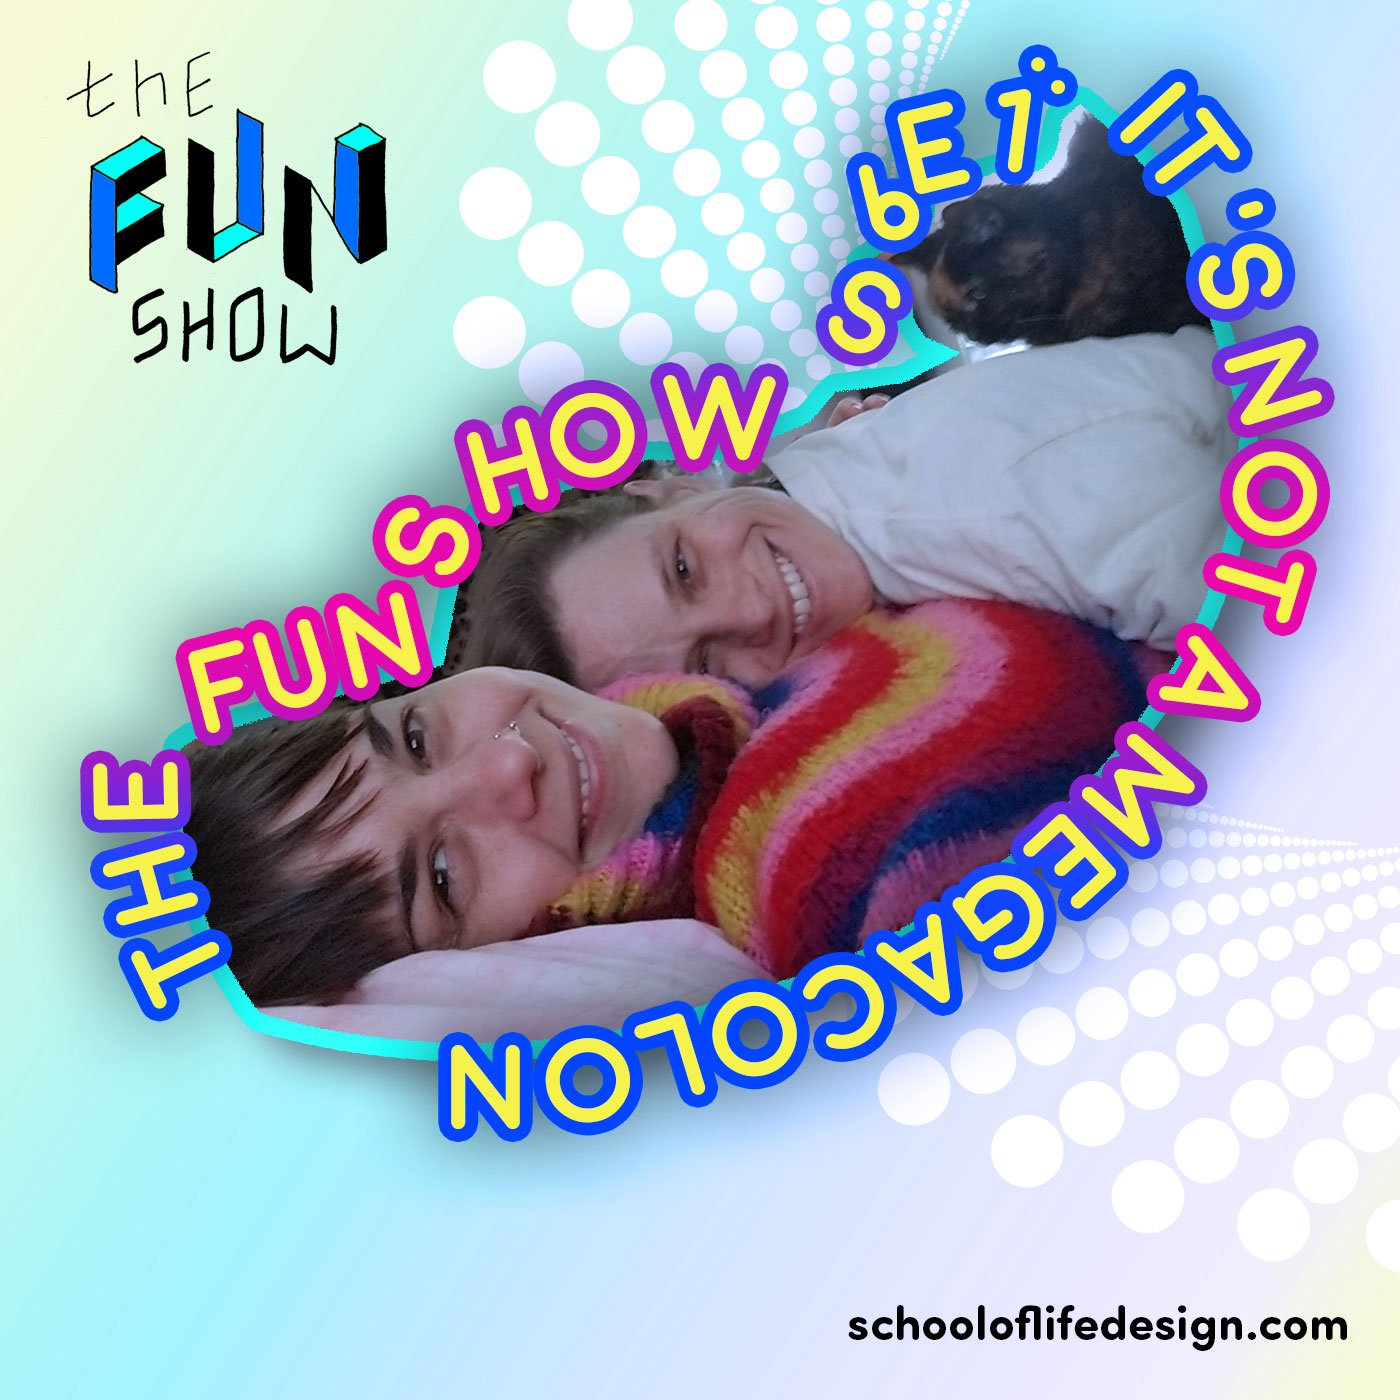 The Fun Show S6E1: It's Not A Megacolon